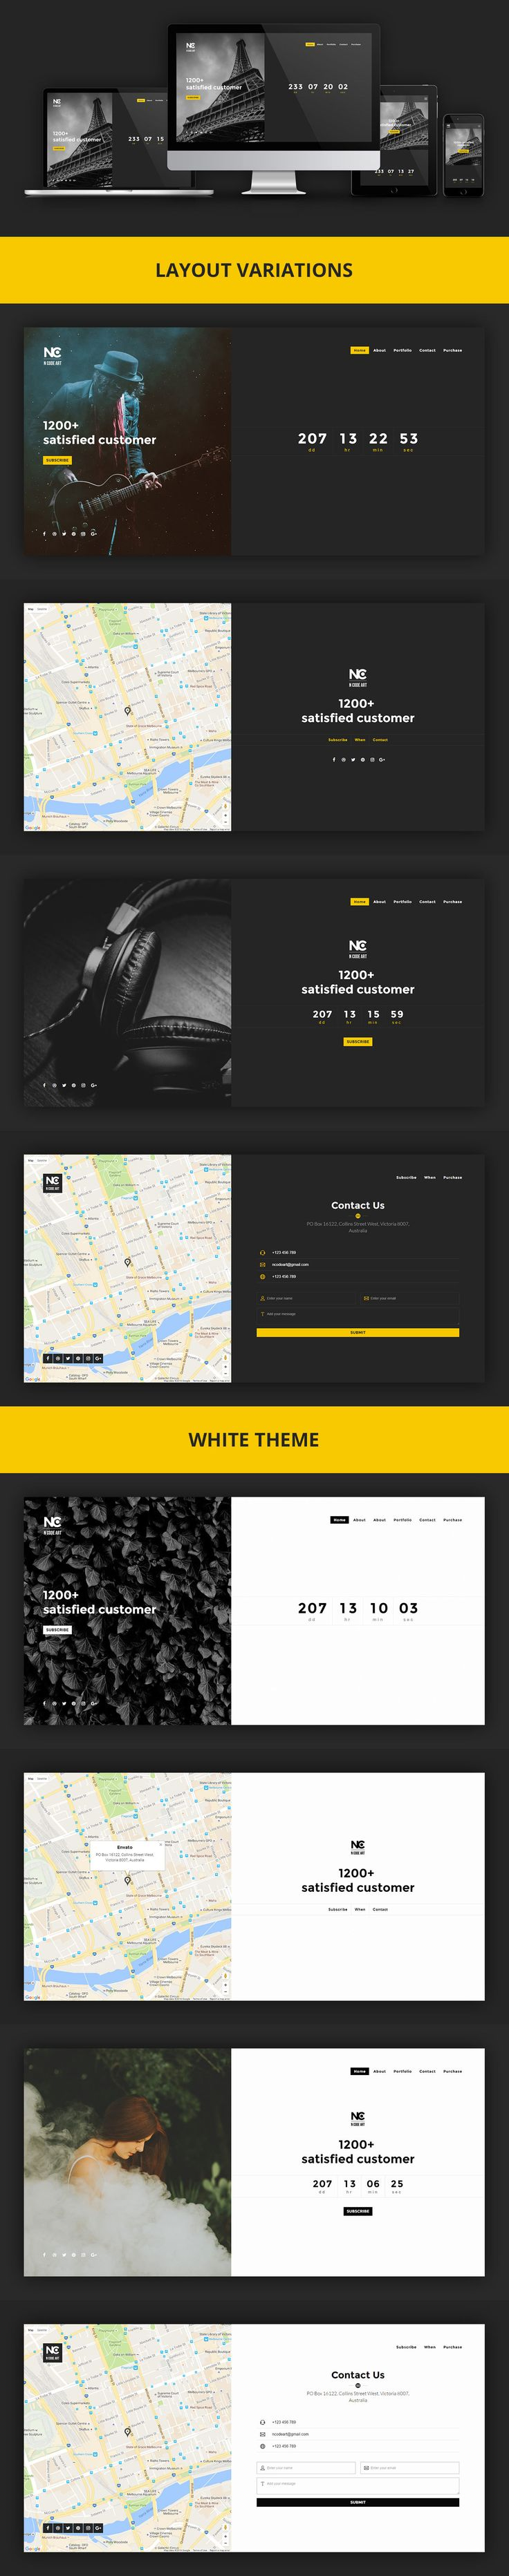 408 best One Page Website Templates images on Pinterest | Bootstrap ...